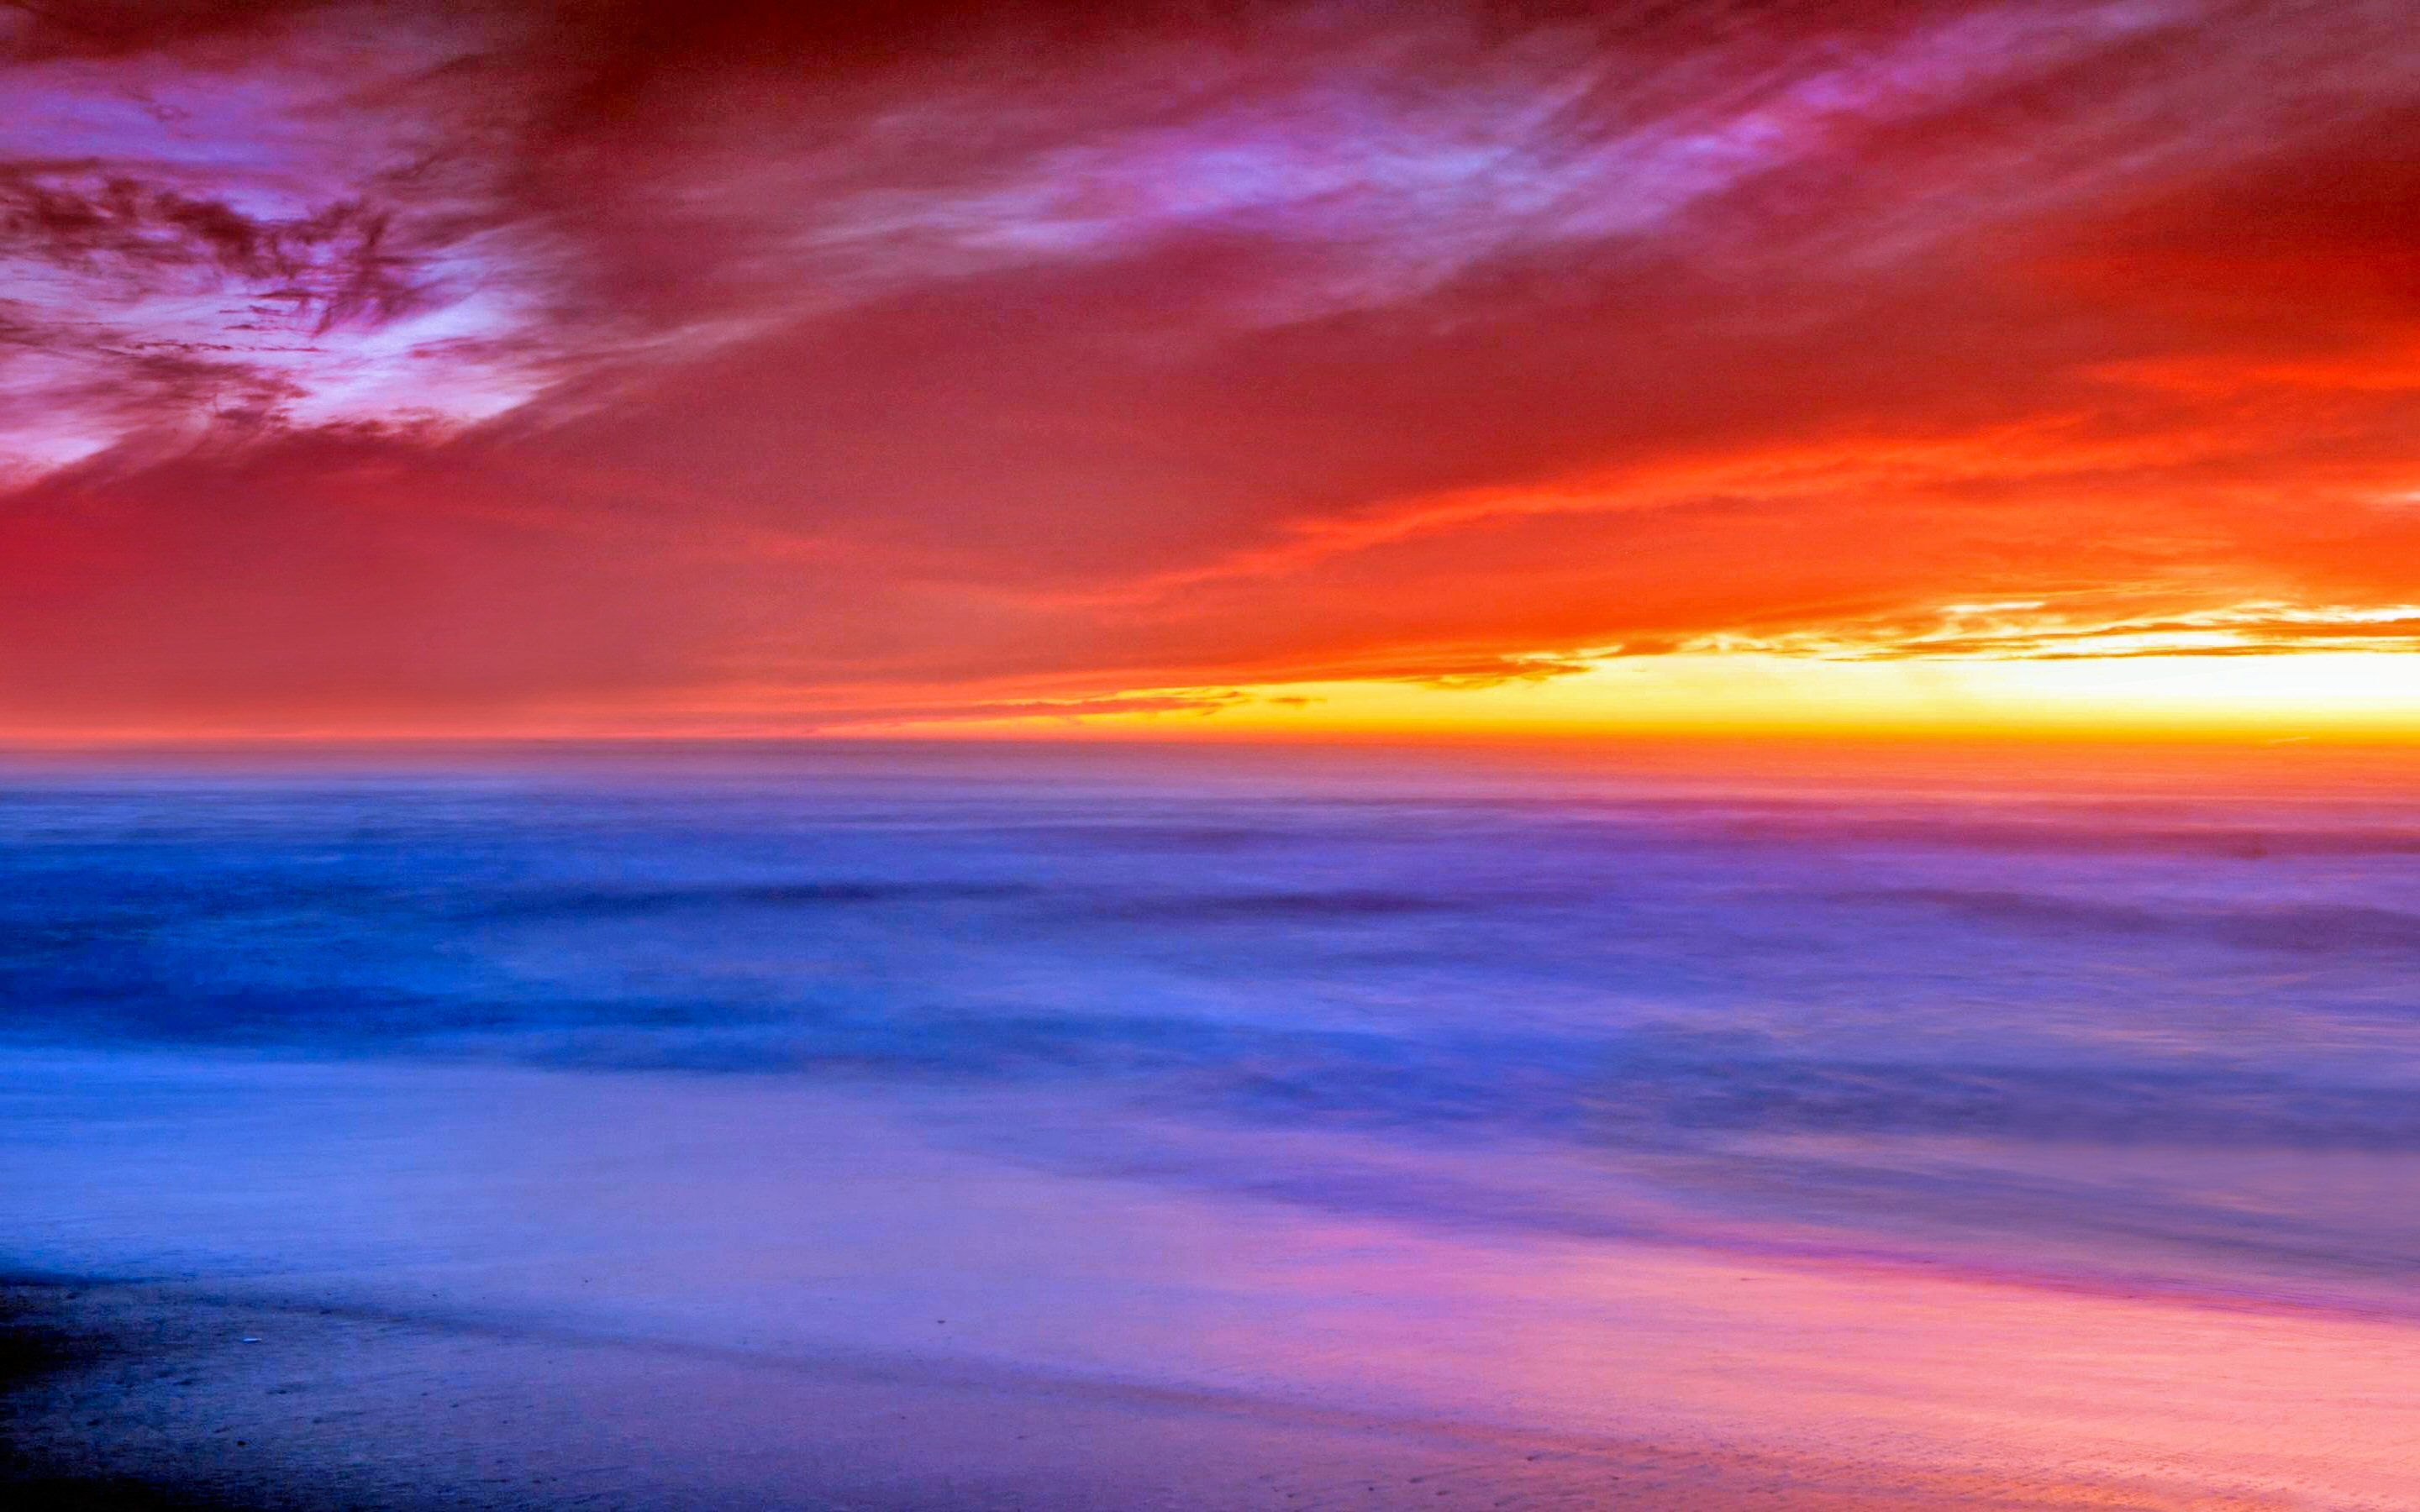 Image Result For Beach Wallpaper With Sunset Awesome Beautiful Red Sunset By The Sandy Beach Wallpaper Beach